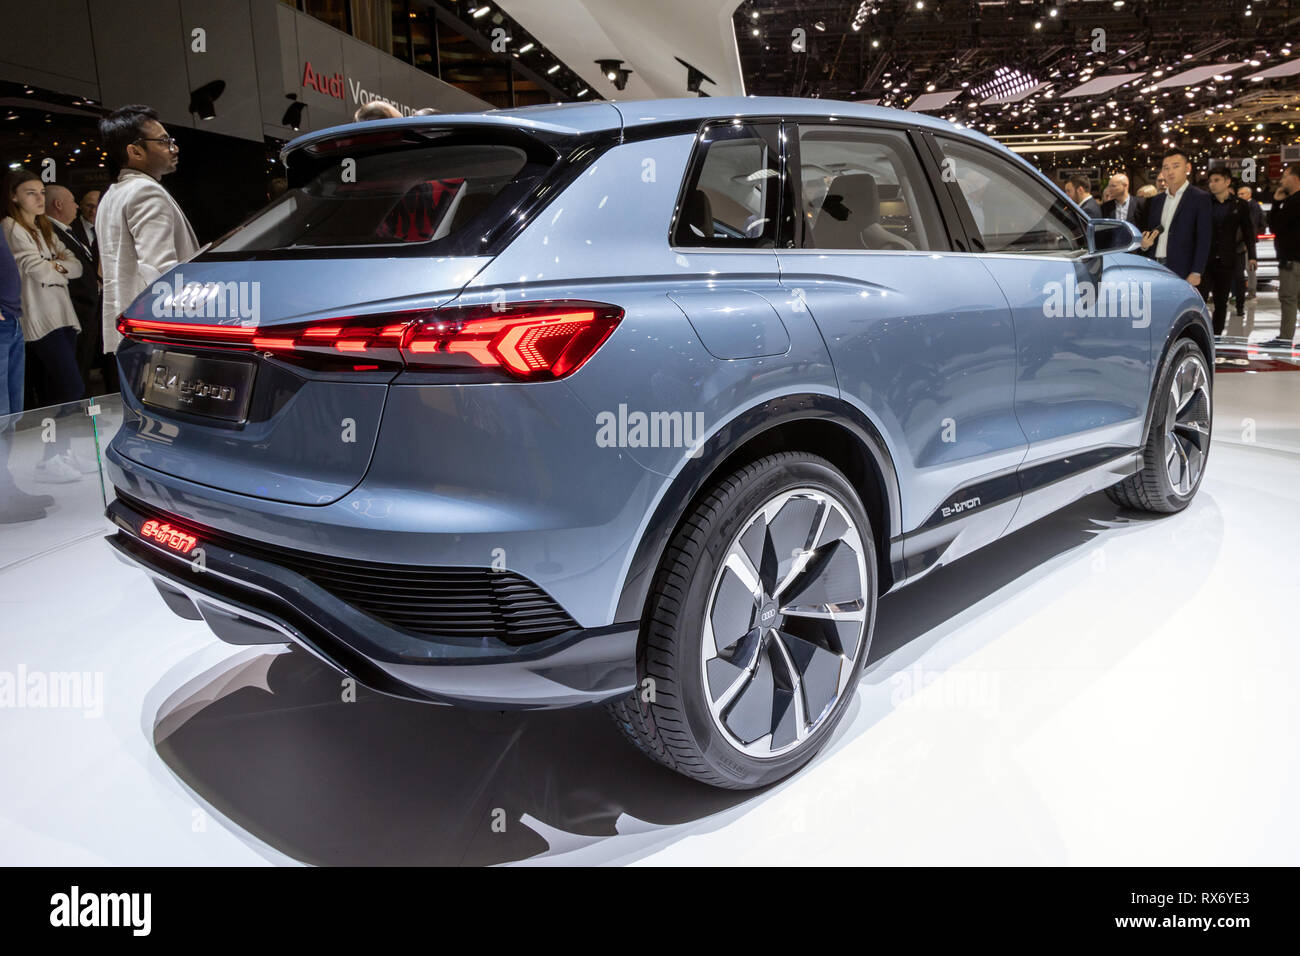 Cuv Car Geneva Switzerland March 6 2019 Audi Q4 E Tron Electric Cuv